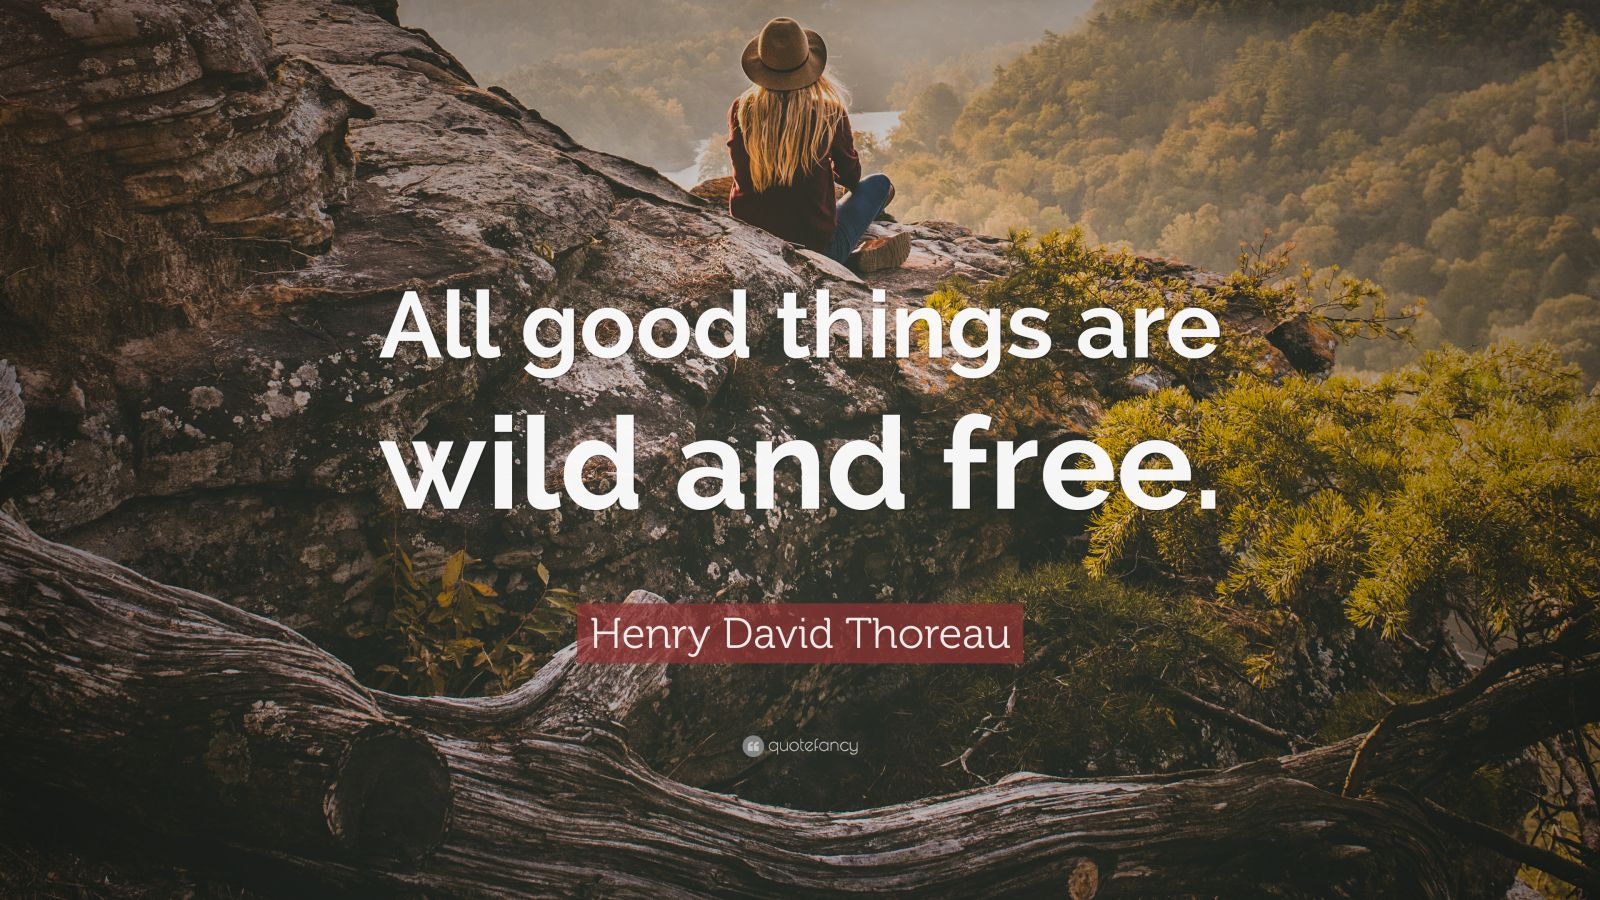 Henry David Thoreau Wallpaper Quote Henry David Thoreau Quote All Good Things Are Wild And